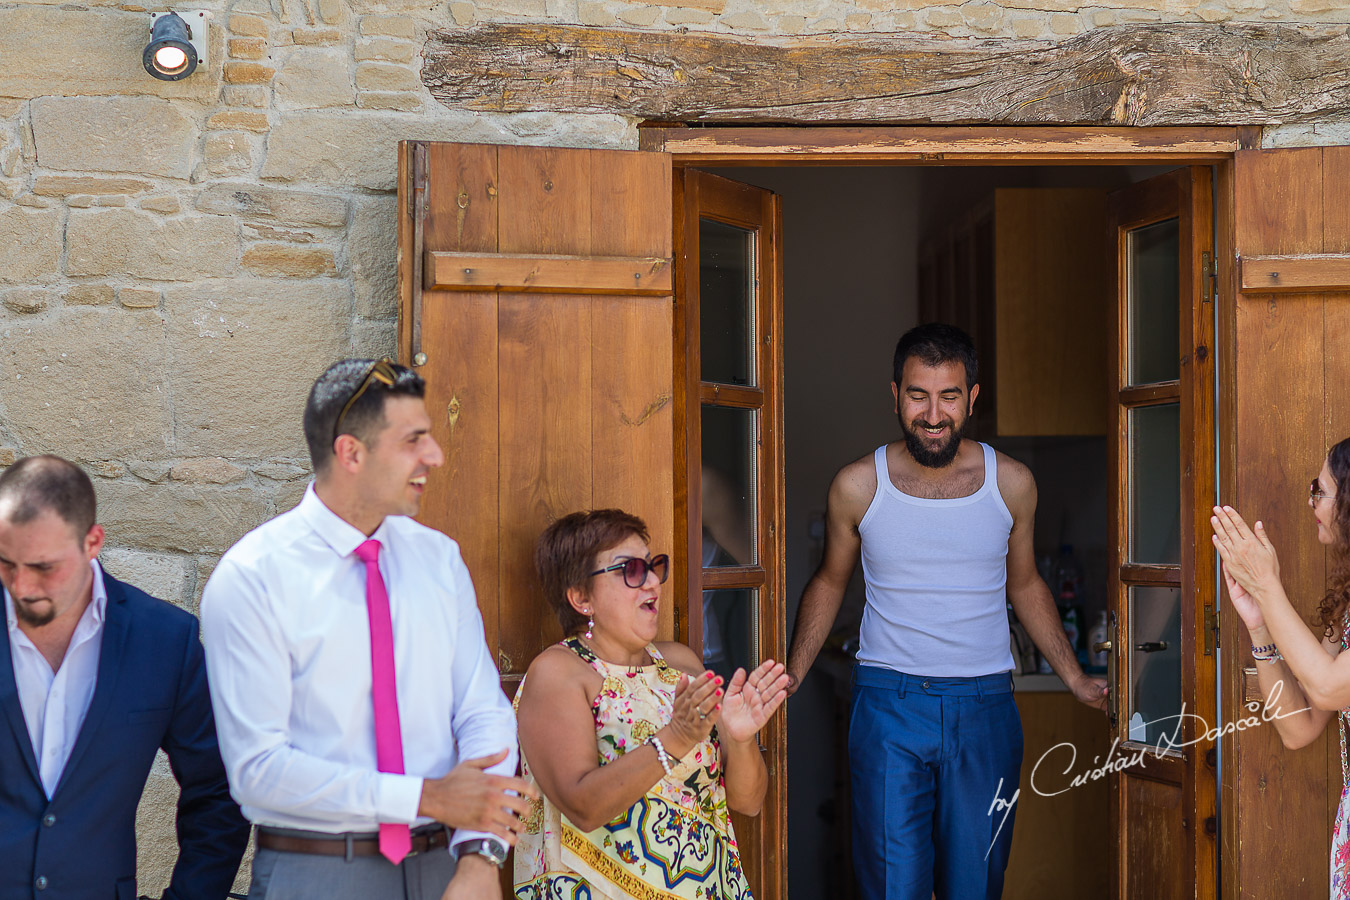 Storytelling wedding photography image captured in Tochni Village in Larnaca district of Cyprus by wedding Photographer Cristian Dascalu